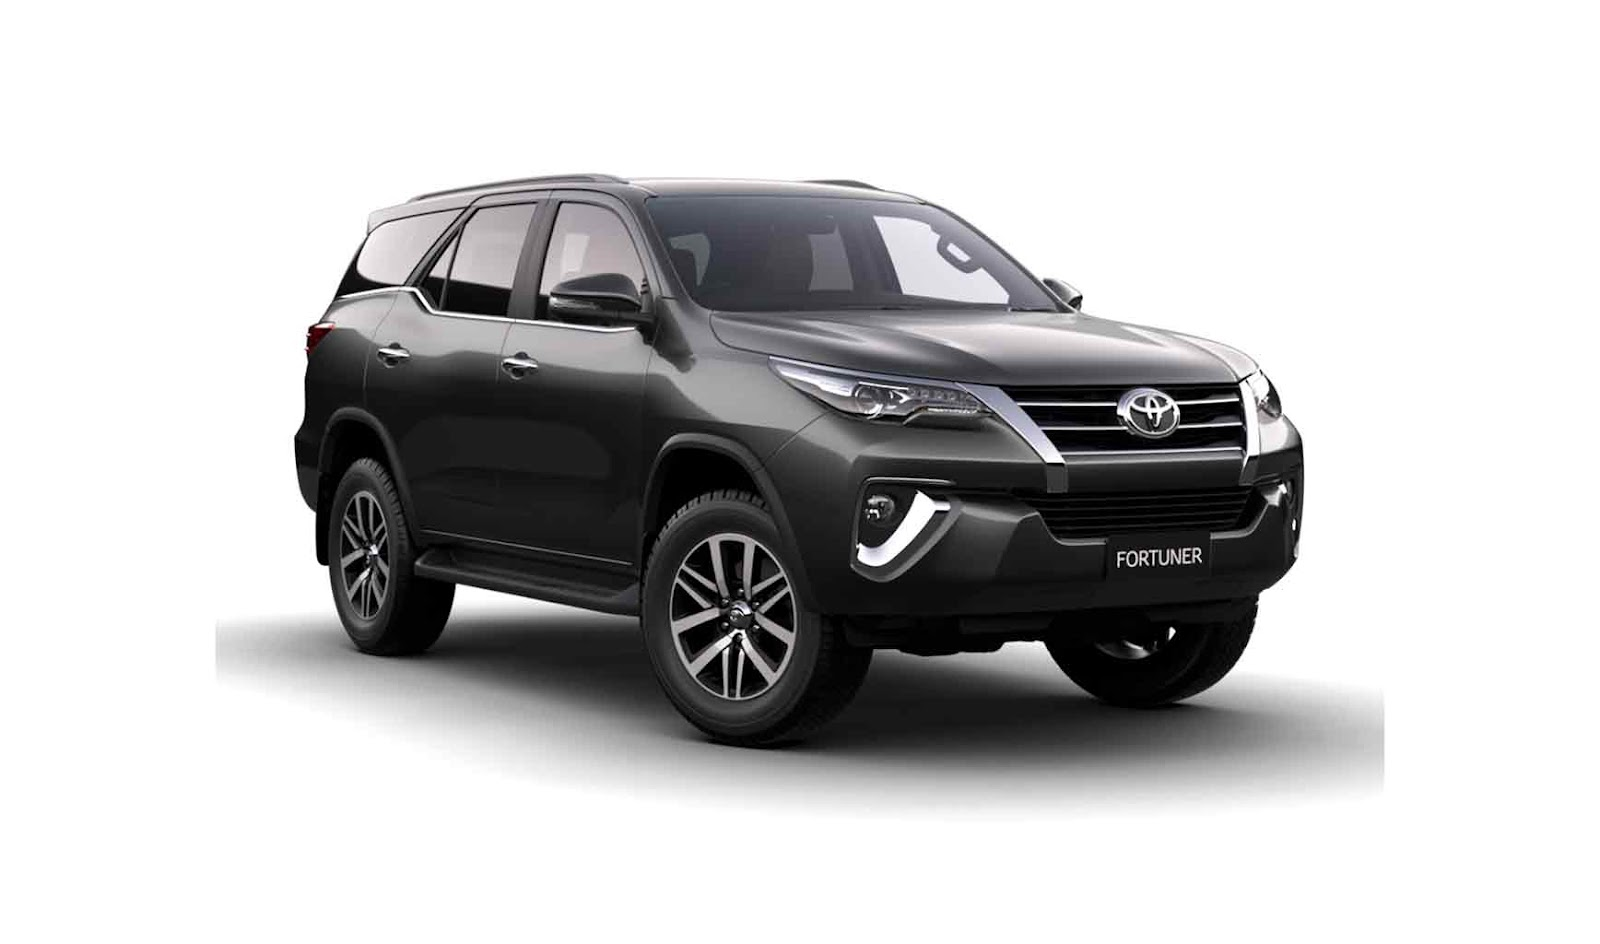 MG Gloster Vs Ford Endeavour Vs Toyota Fortuner Comparison